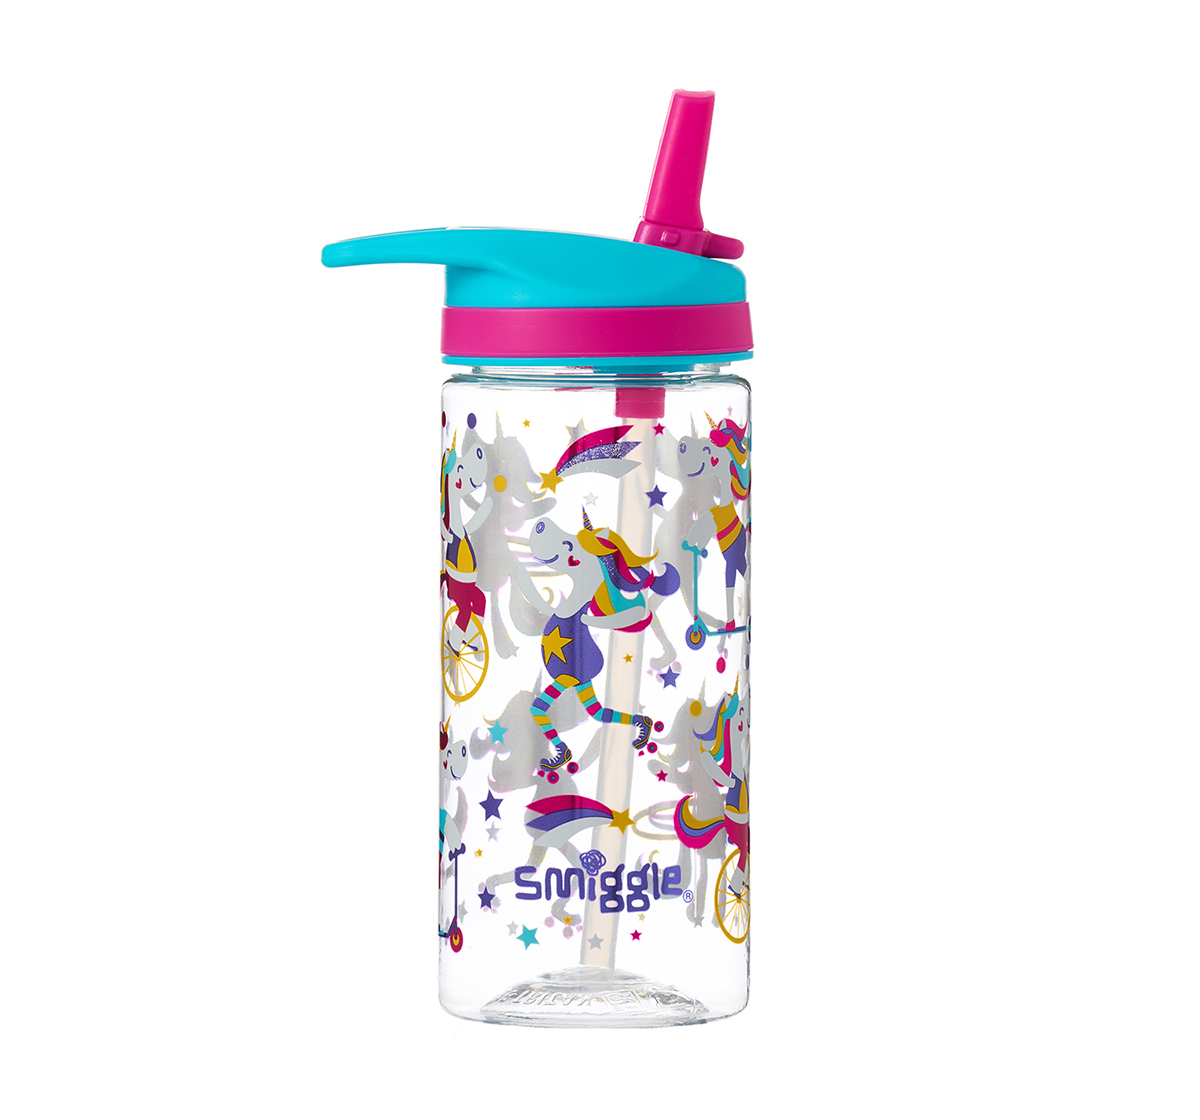 Smiggle   Smiggle Whirl Junior Bottle with Flip Top Spout - Unicorn Print Bags for Kids age 3Y+ (Mint)